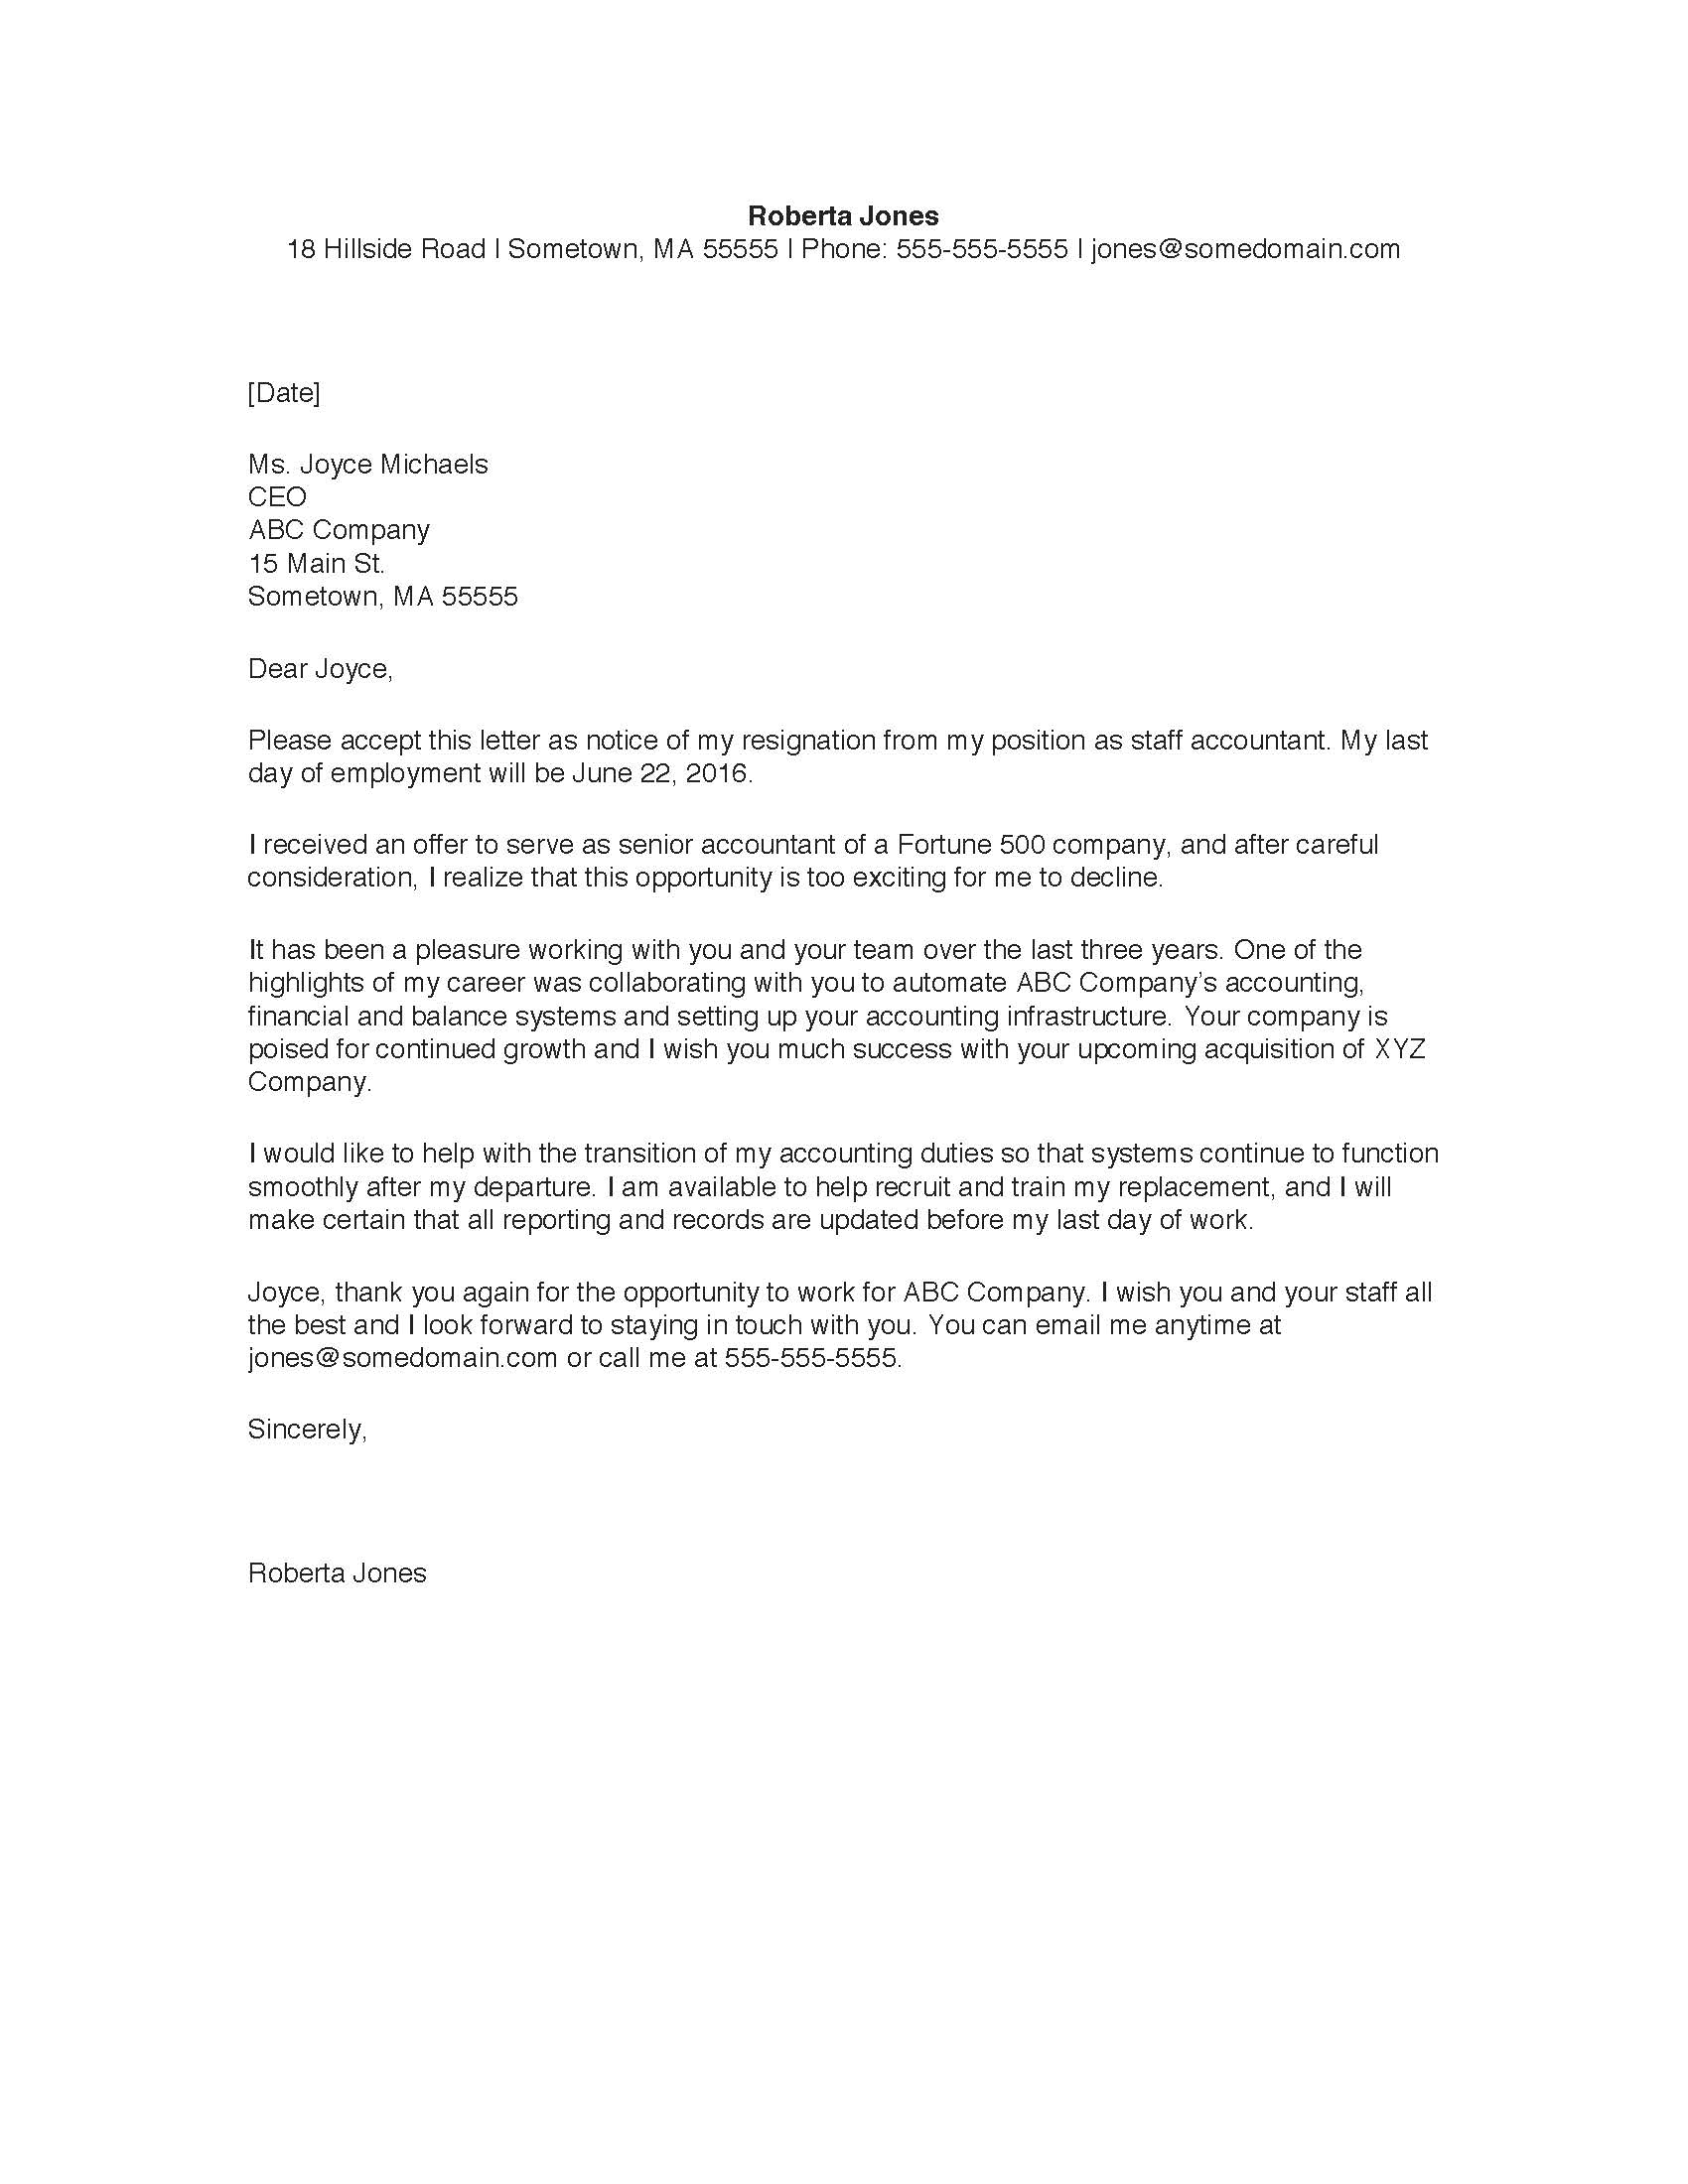 Letter format for resignation from job geccetackletarts letter thecheapjerseys Image collections